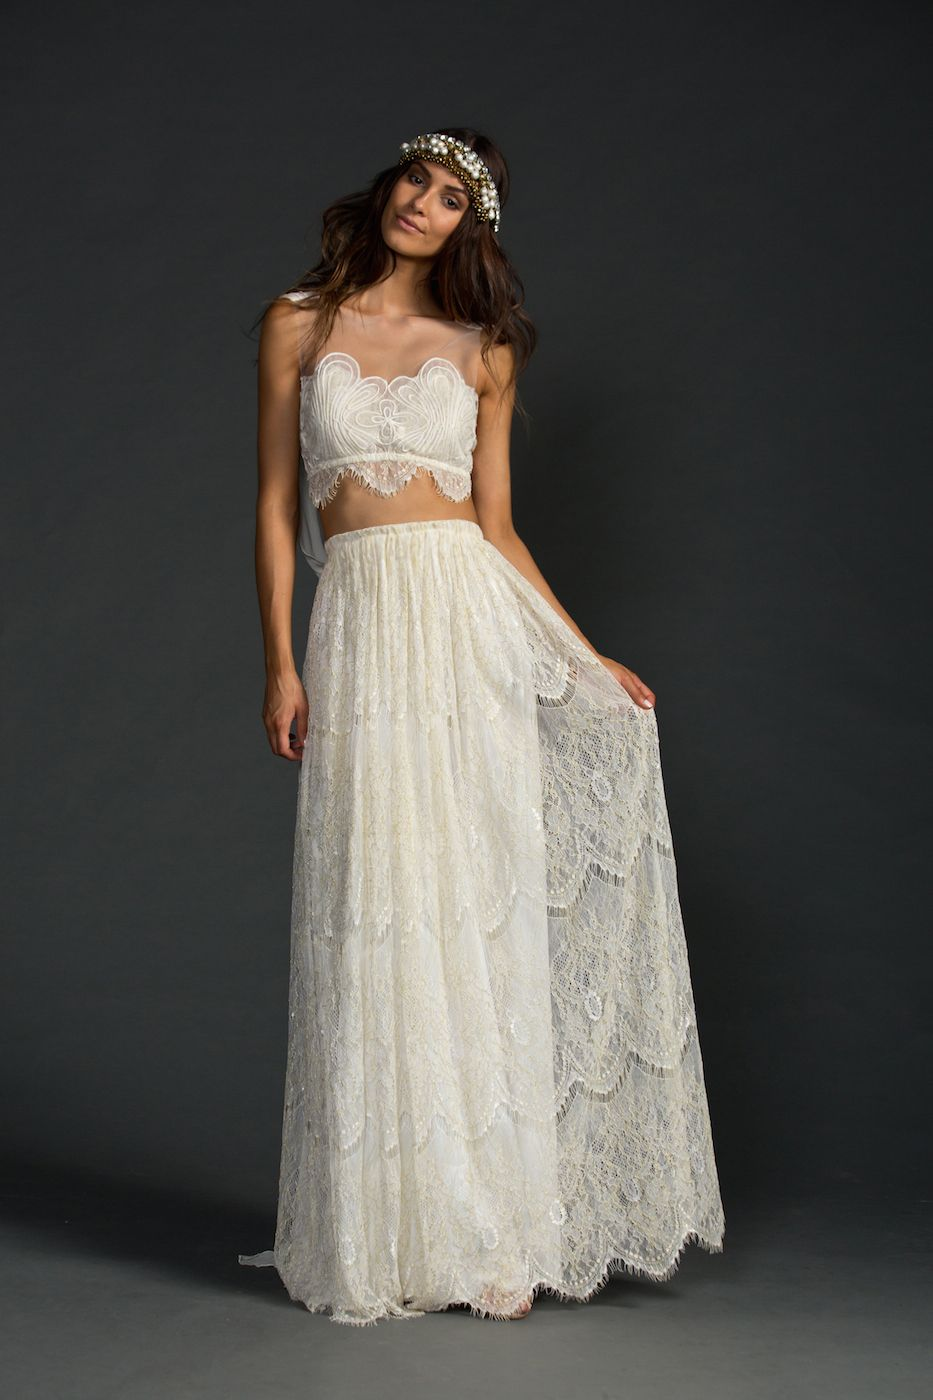 Avril Grace Loves Lace Two piece wedding dress